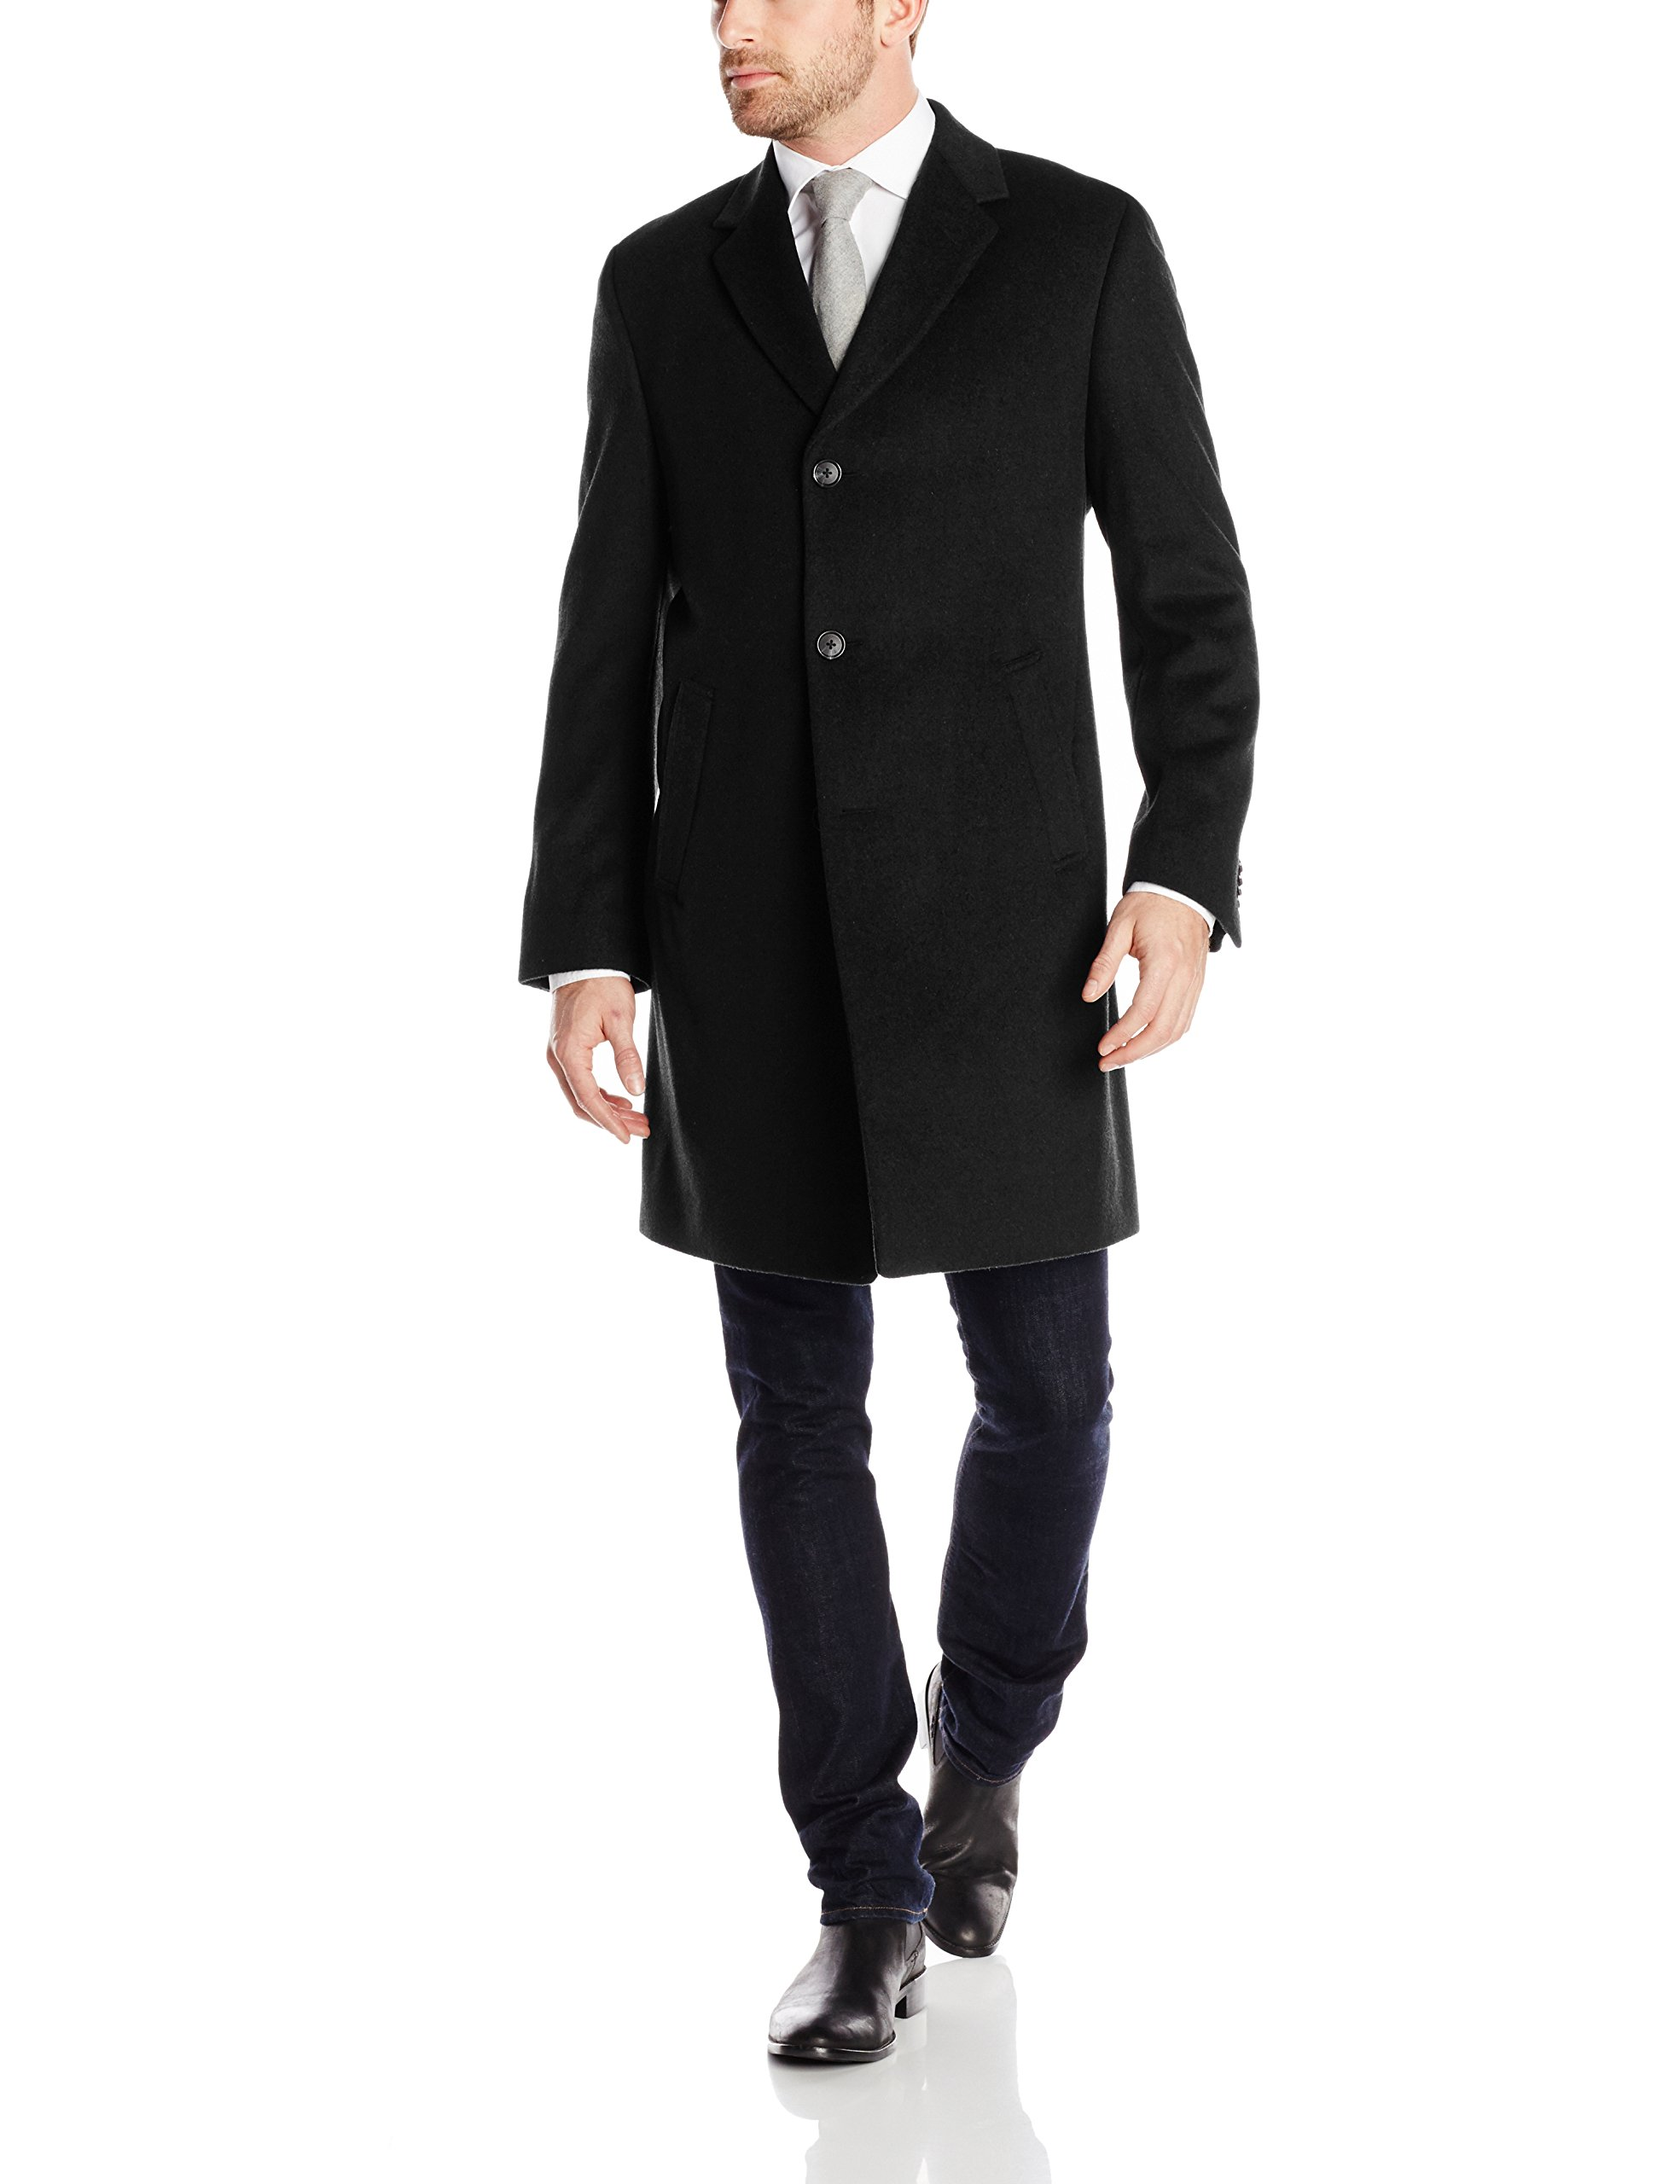 Kenneth Cole REACTION Men's Raburn Wool Top Coat, Black, 42 Short by Kenneth Cole REACTION